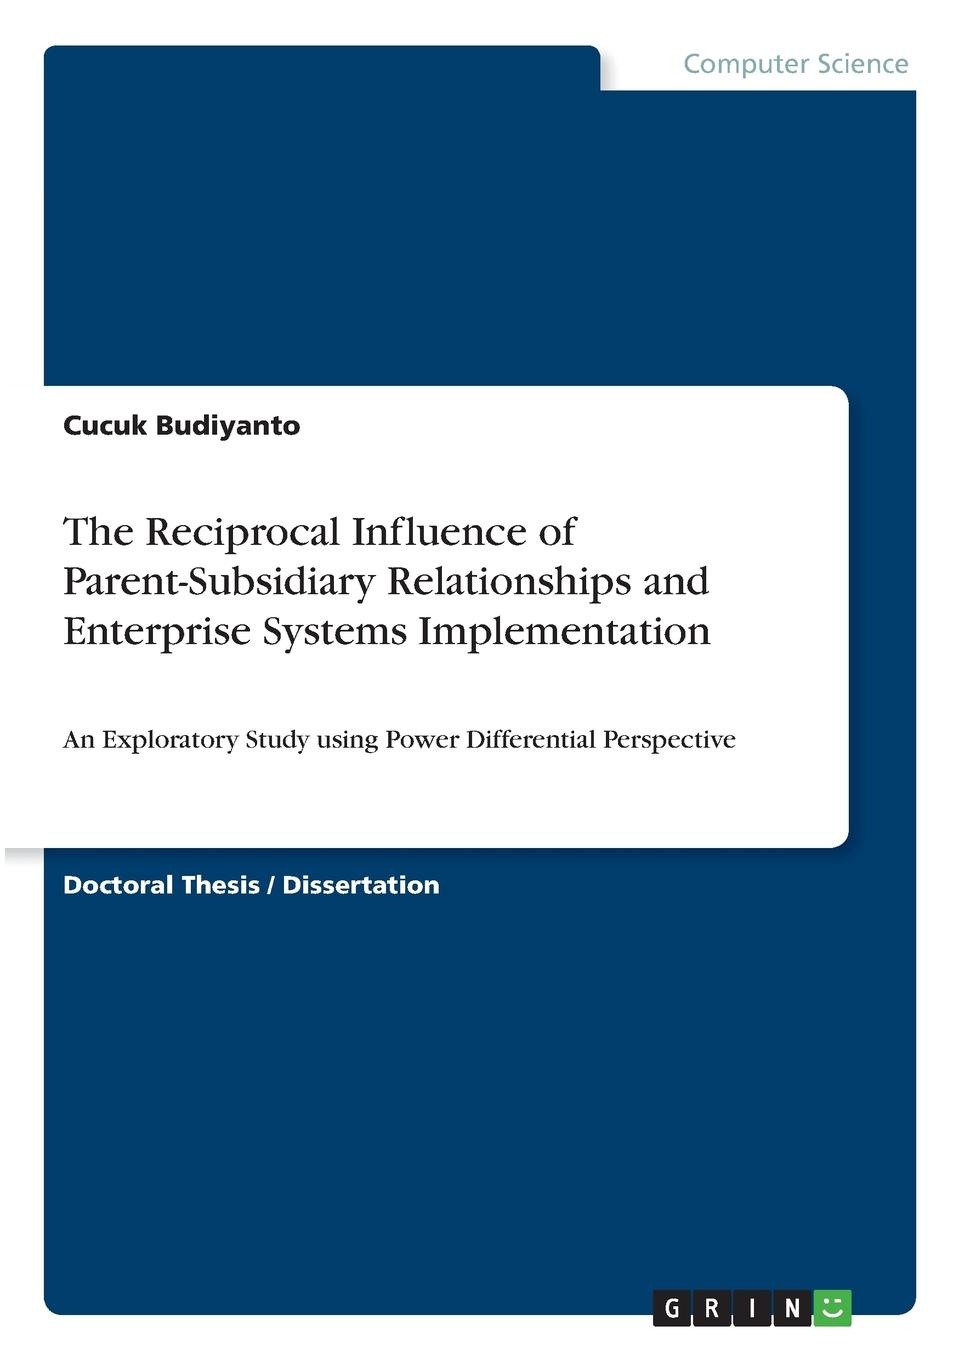 Cucuk Budiyanto The Reciprocal Influence of Parent-Subsidiary Relationships and Enterprise Systems Implementation implementation the key to successful information systems